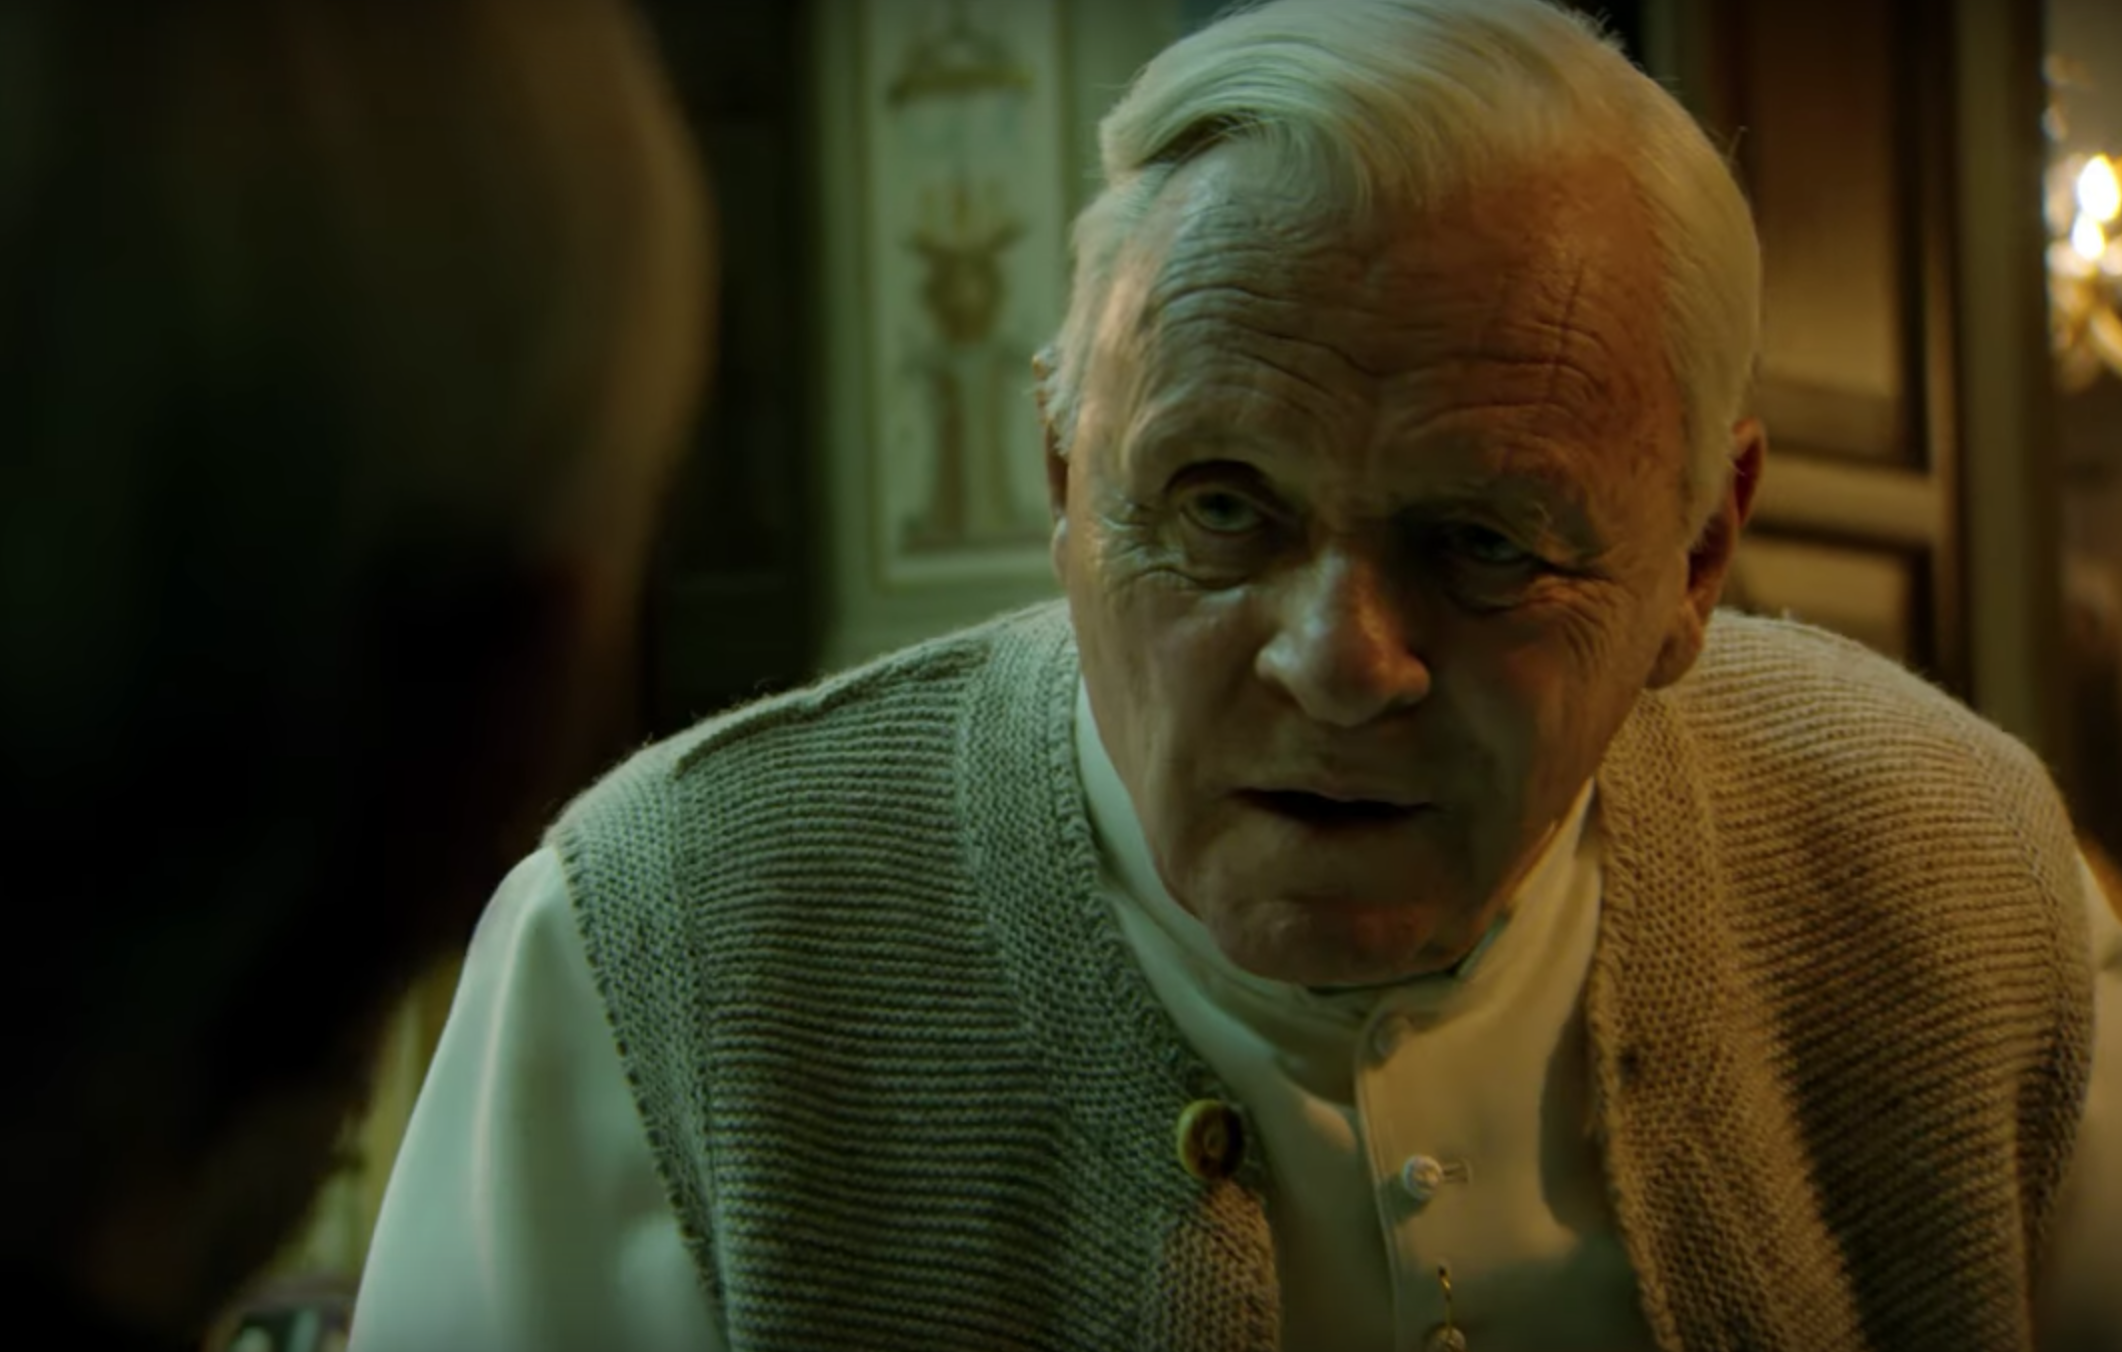 'The Two Popes' Trailer: Anthony Hopkins and Jonathan Pryce in Netflix Awards Hopeful